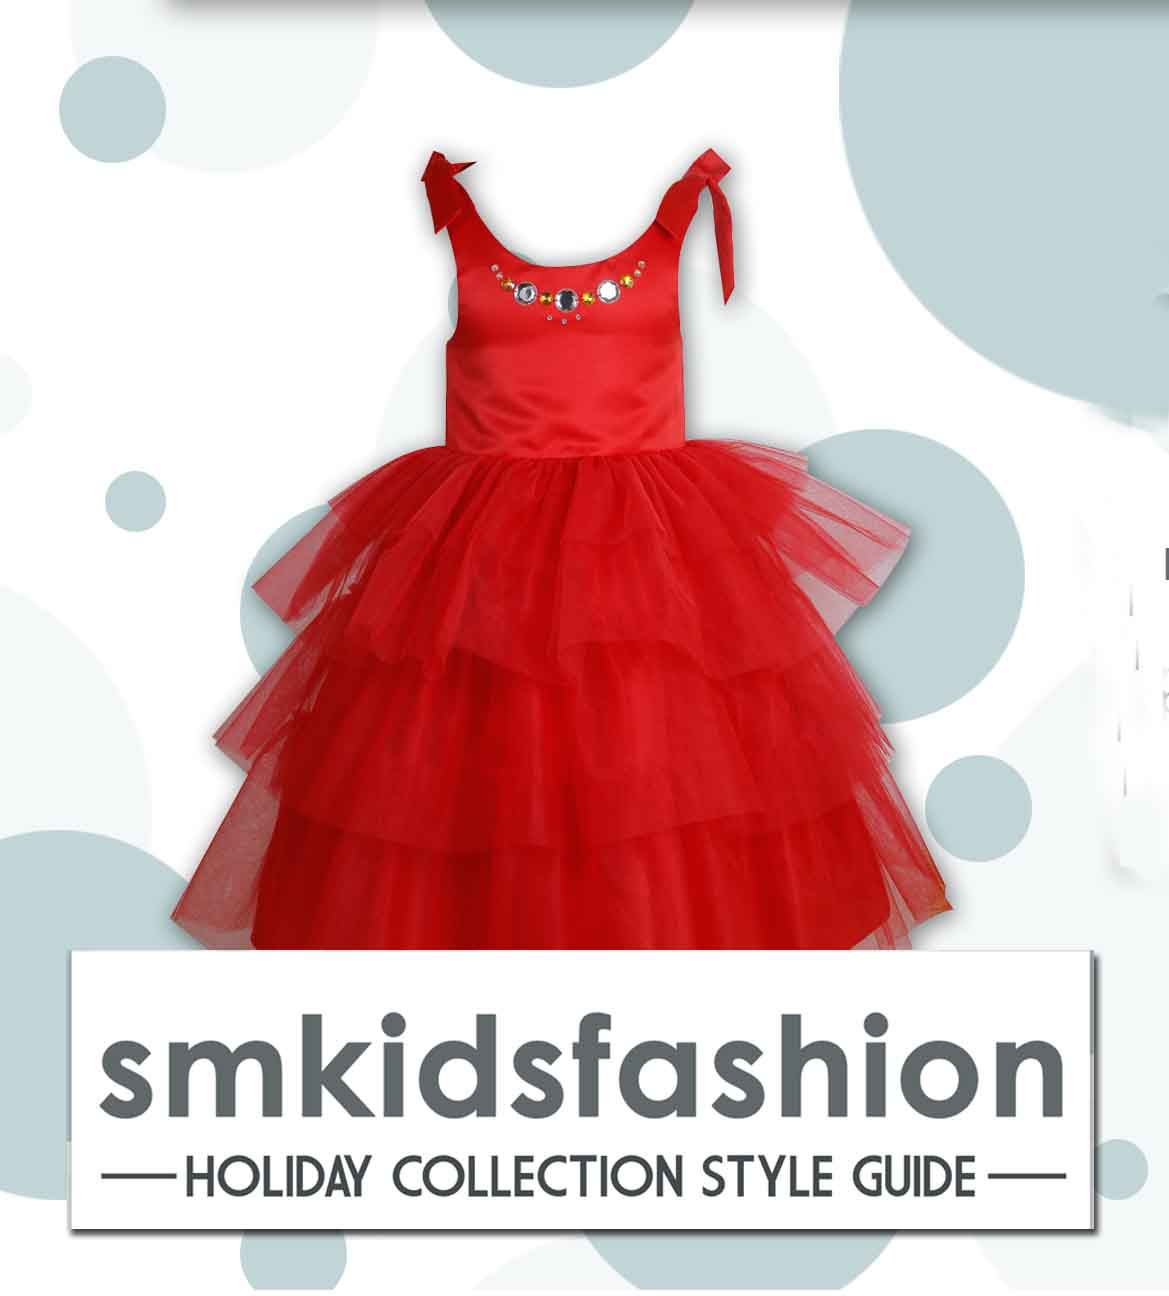 SM Kids' Fashion Wide-Ranging Holiday Collection